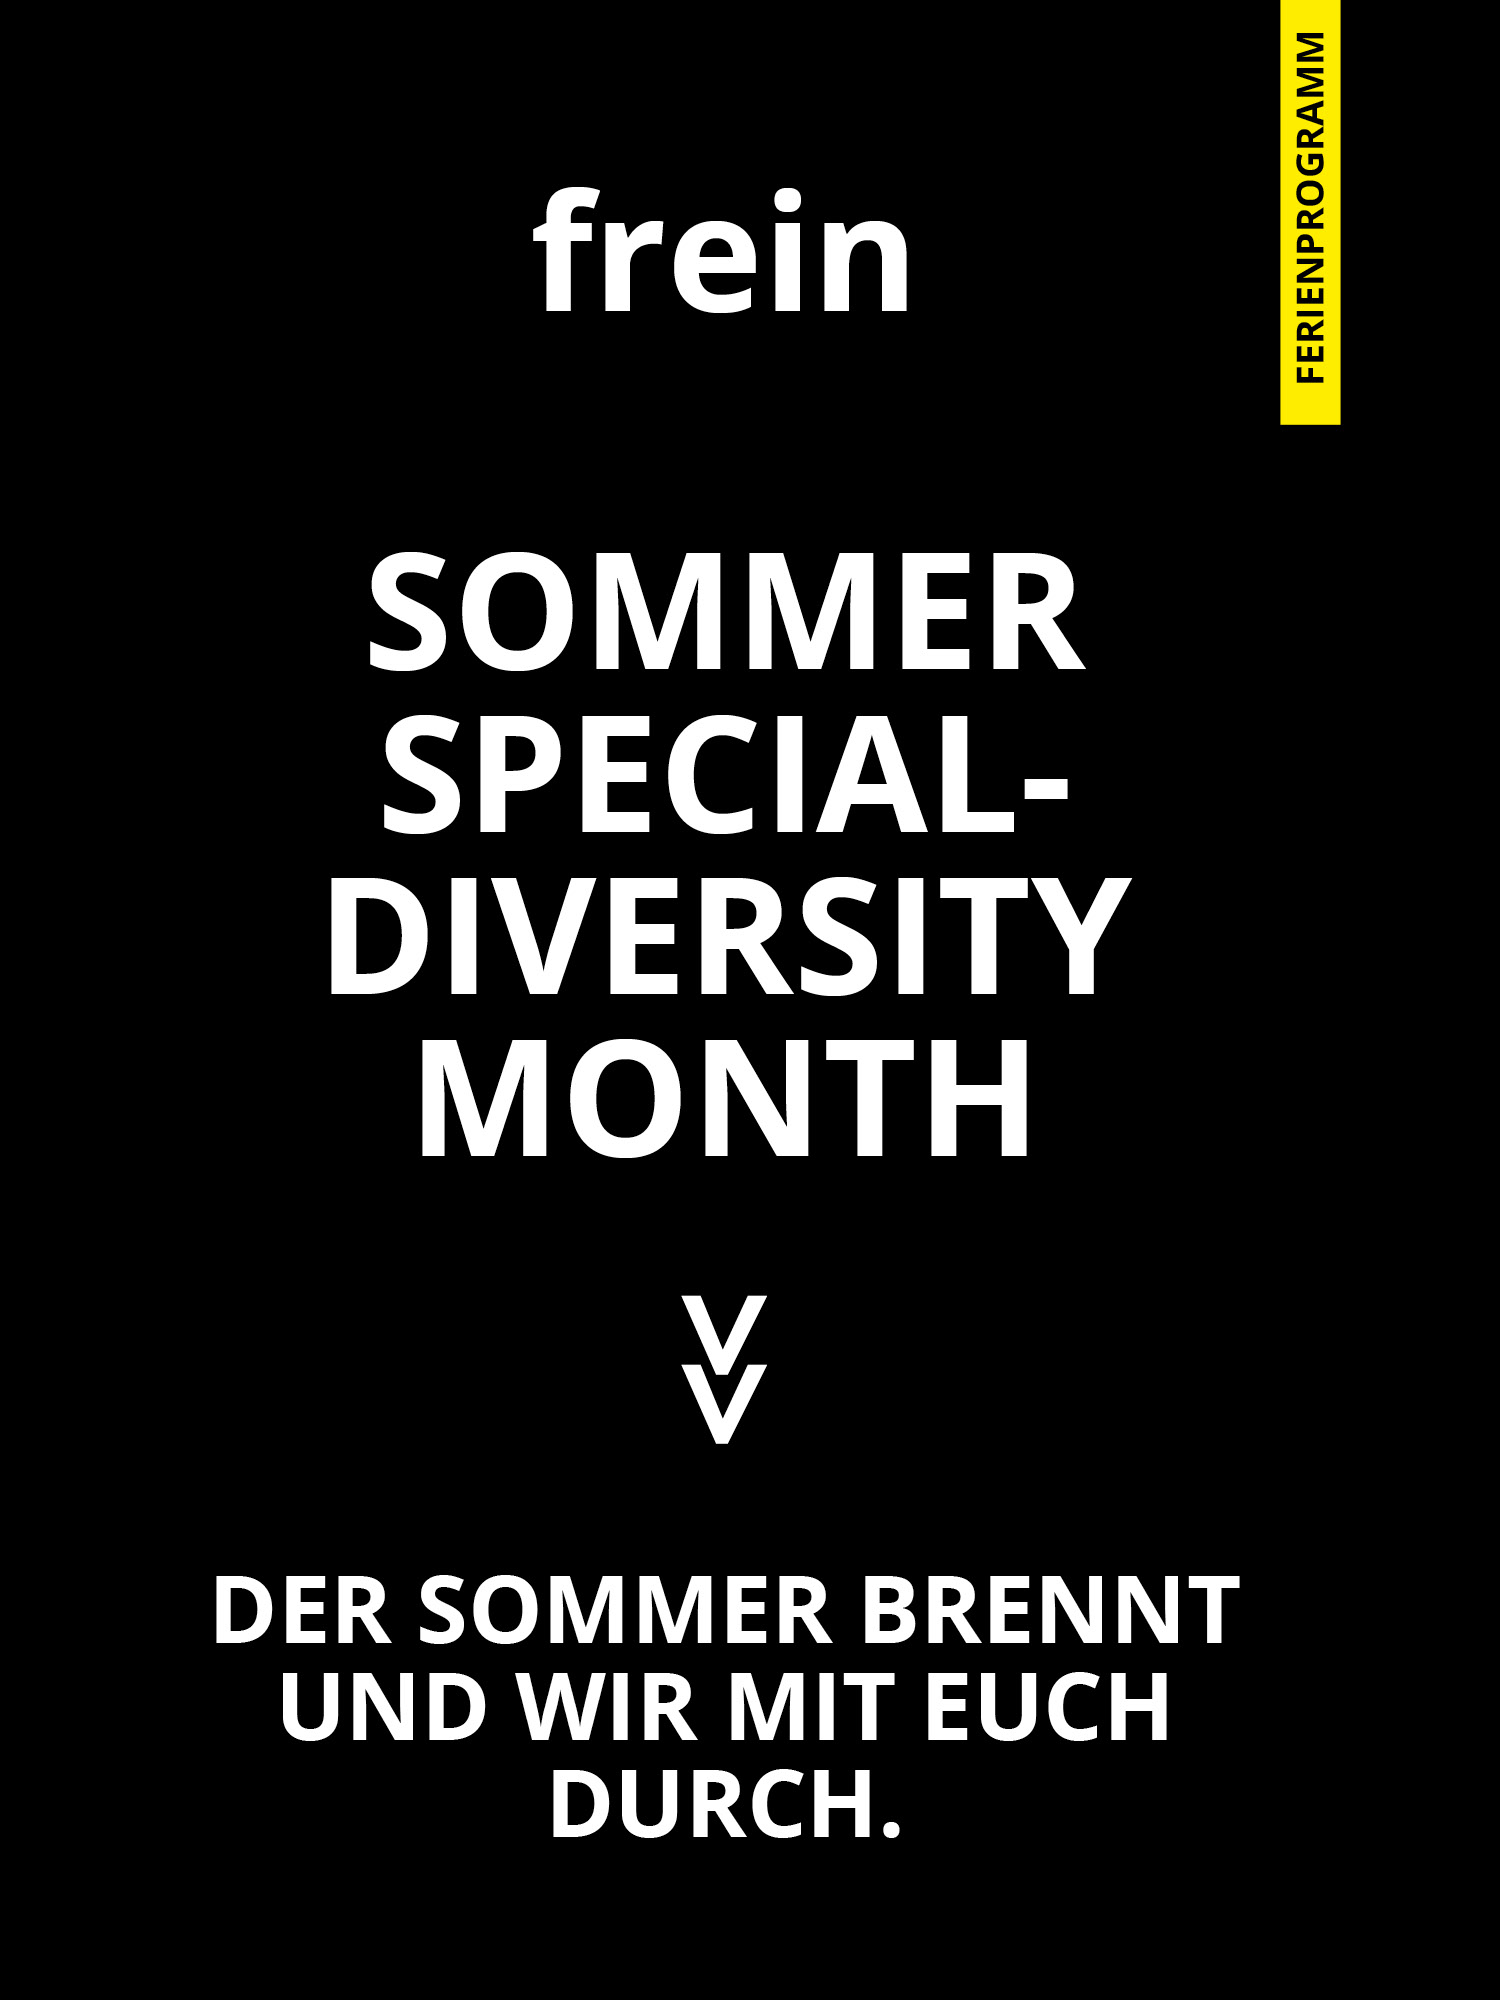 Sommer-Special-Diversity-Month